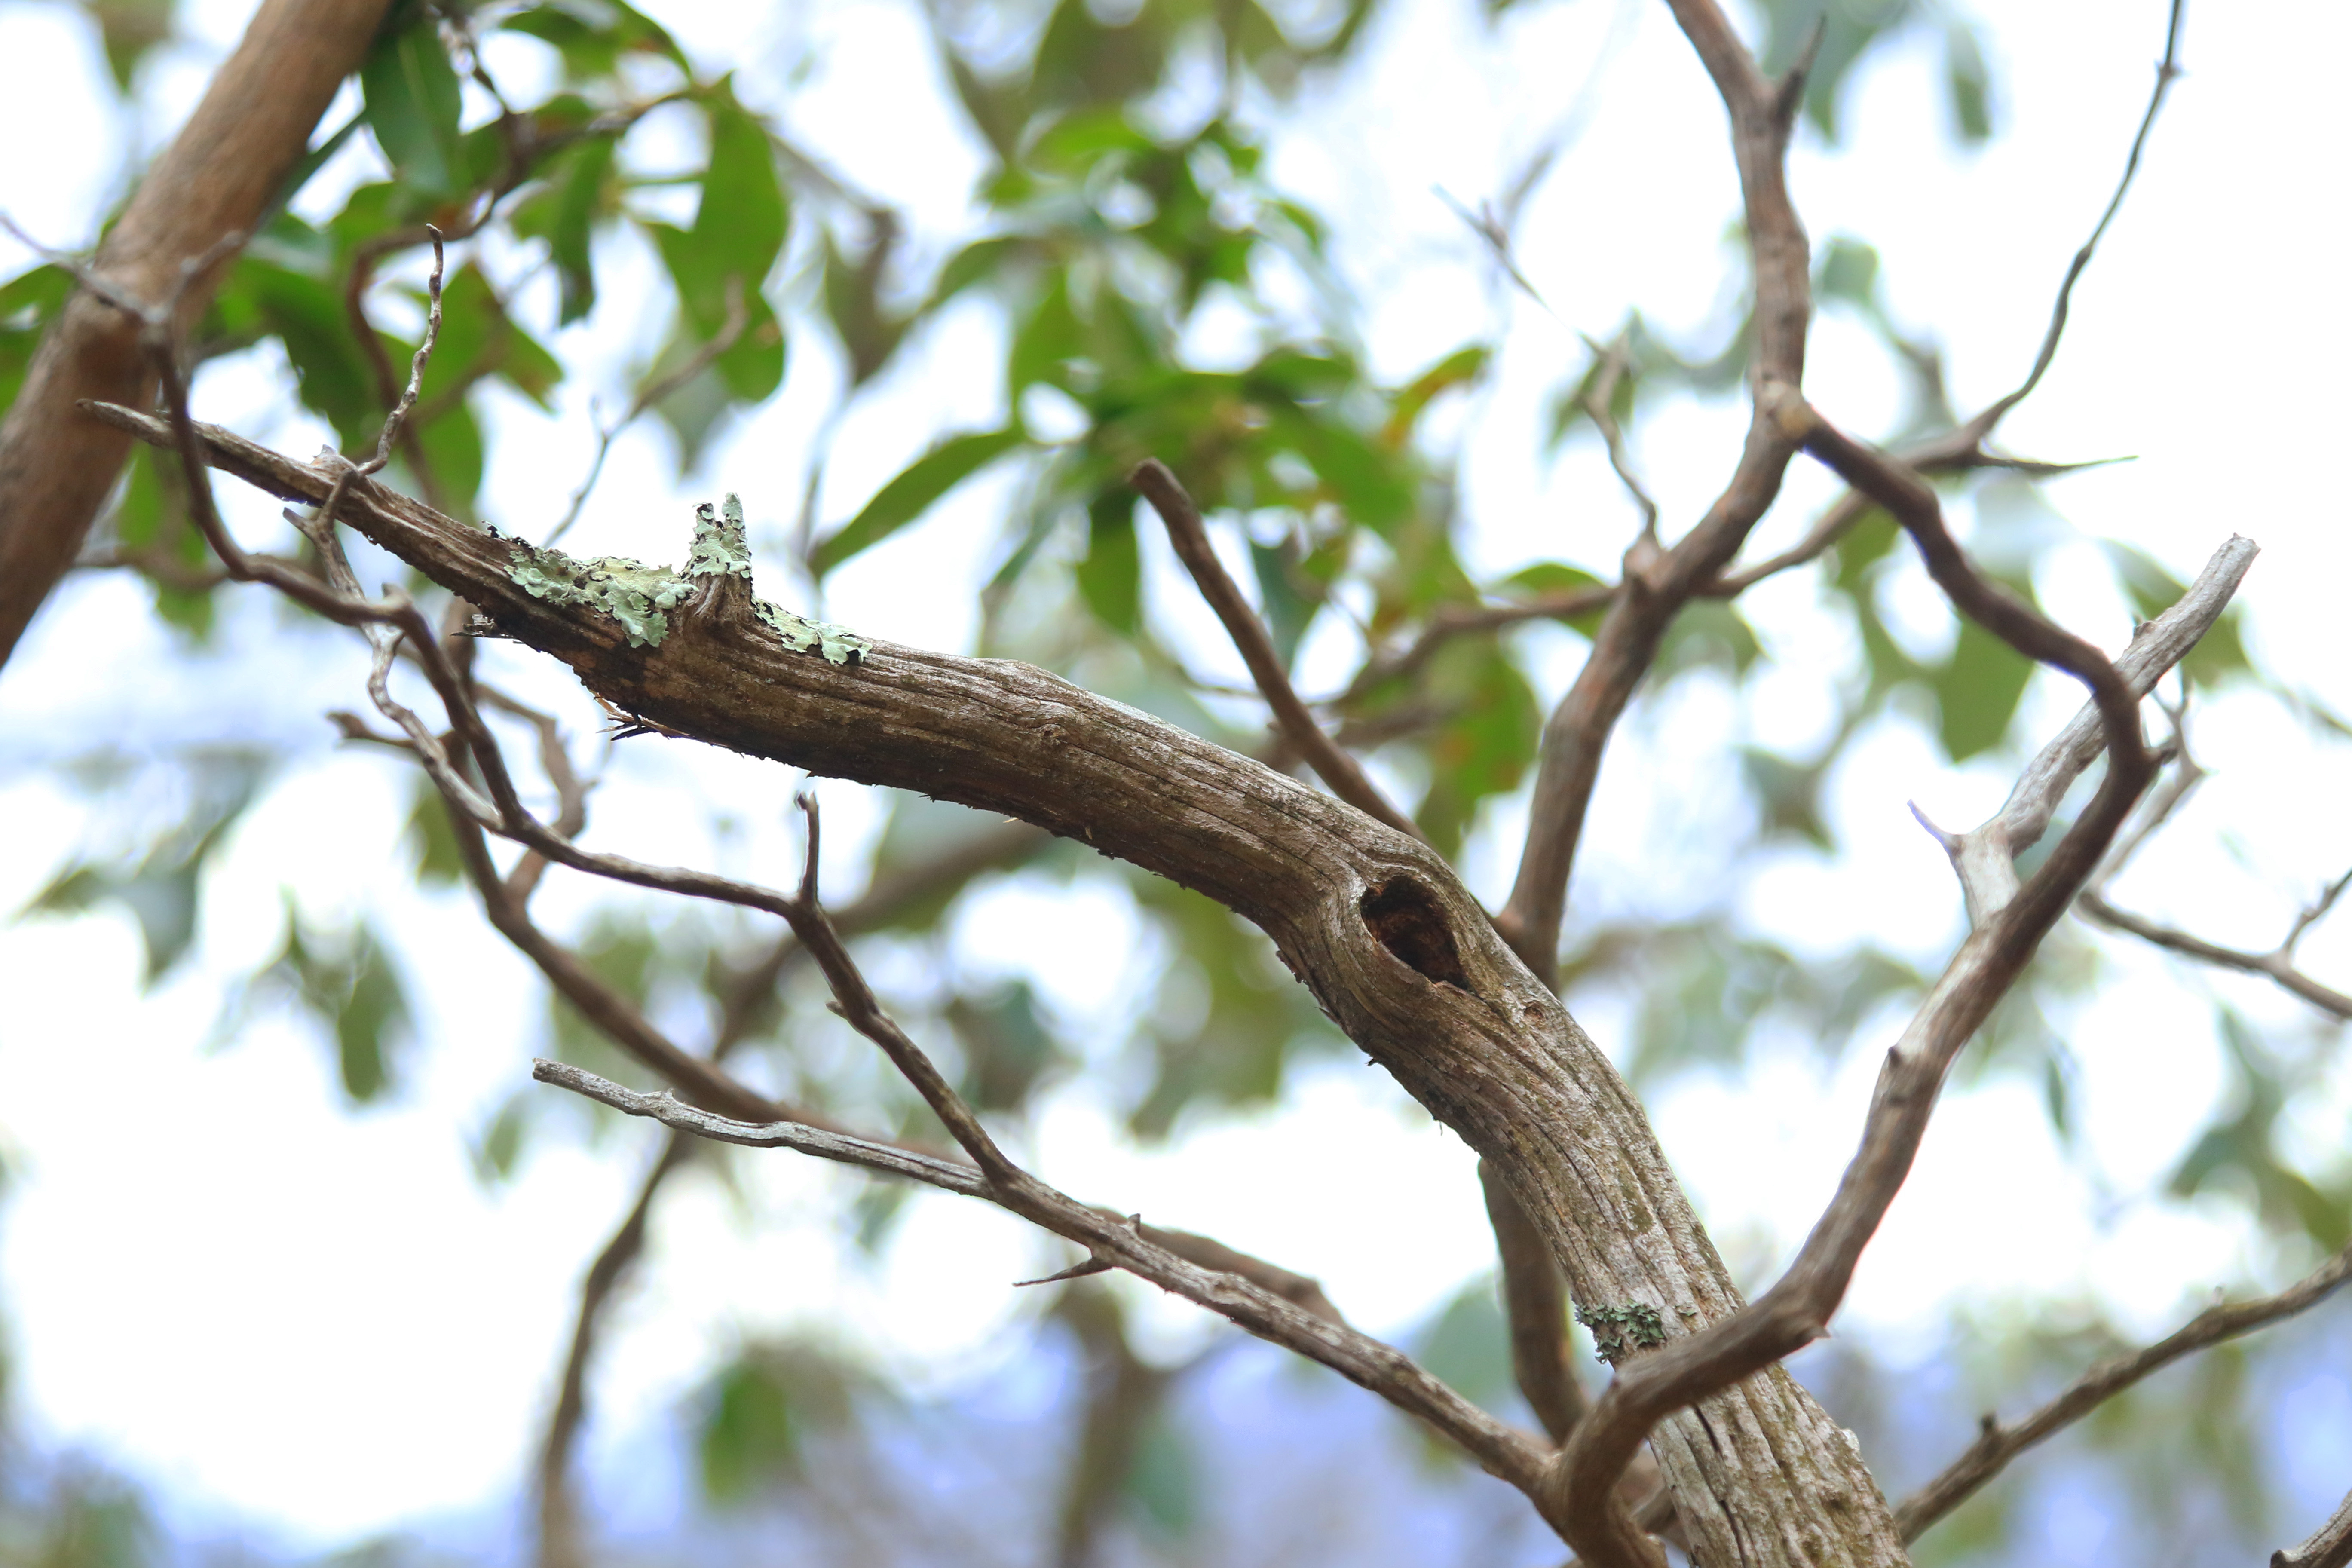 A mountain laurel branch with a few leaves